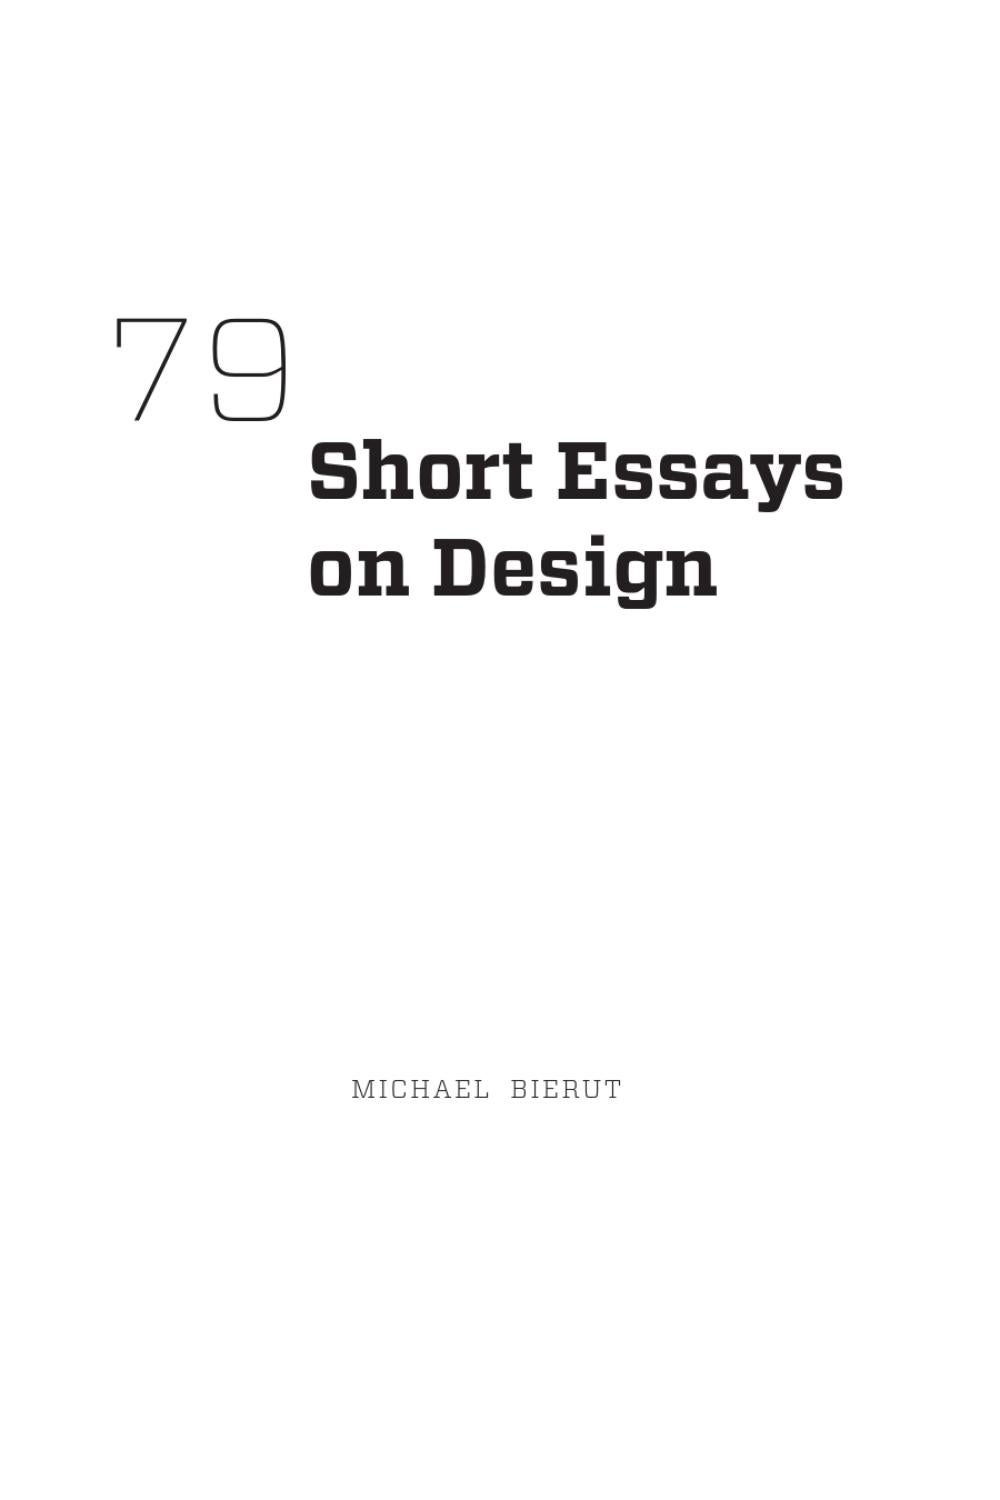 michael bierut 79 short essays on design Browse and read 79 short essays on design michael bierut 79 short essays on design michael bierut make more knowledge even in less time every day.